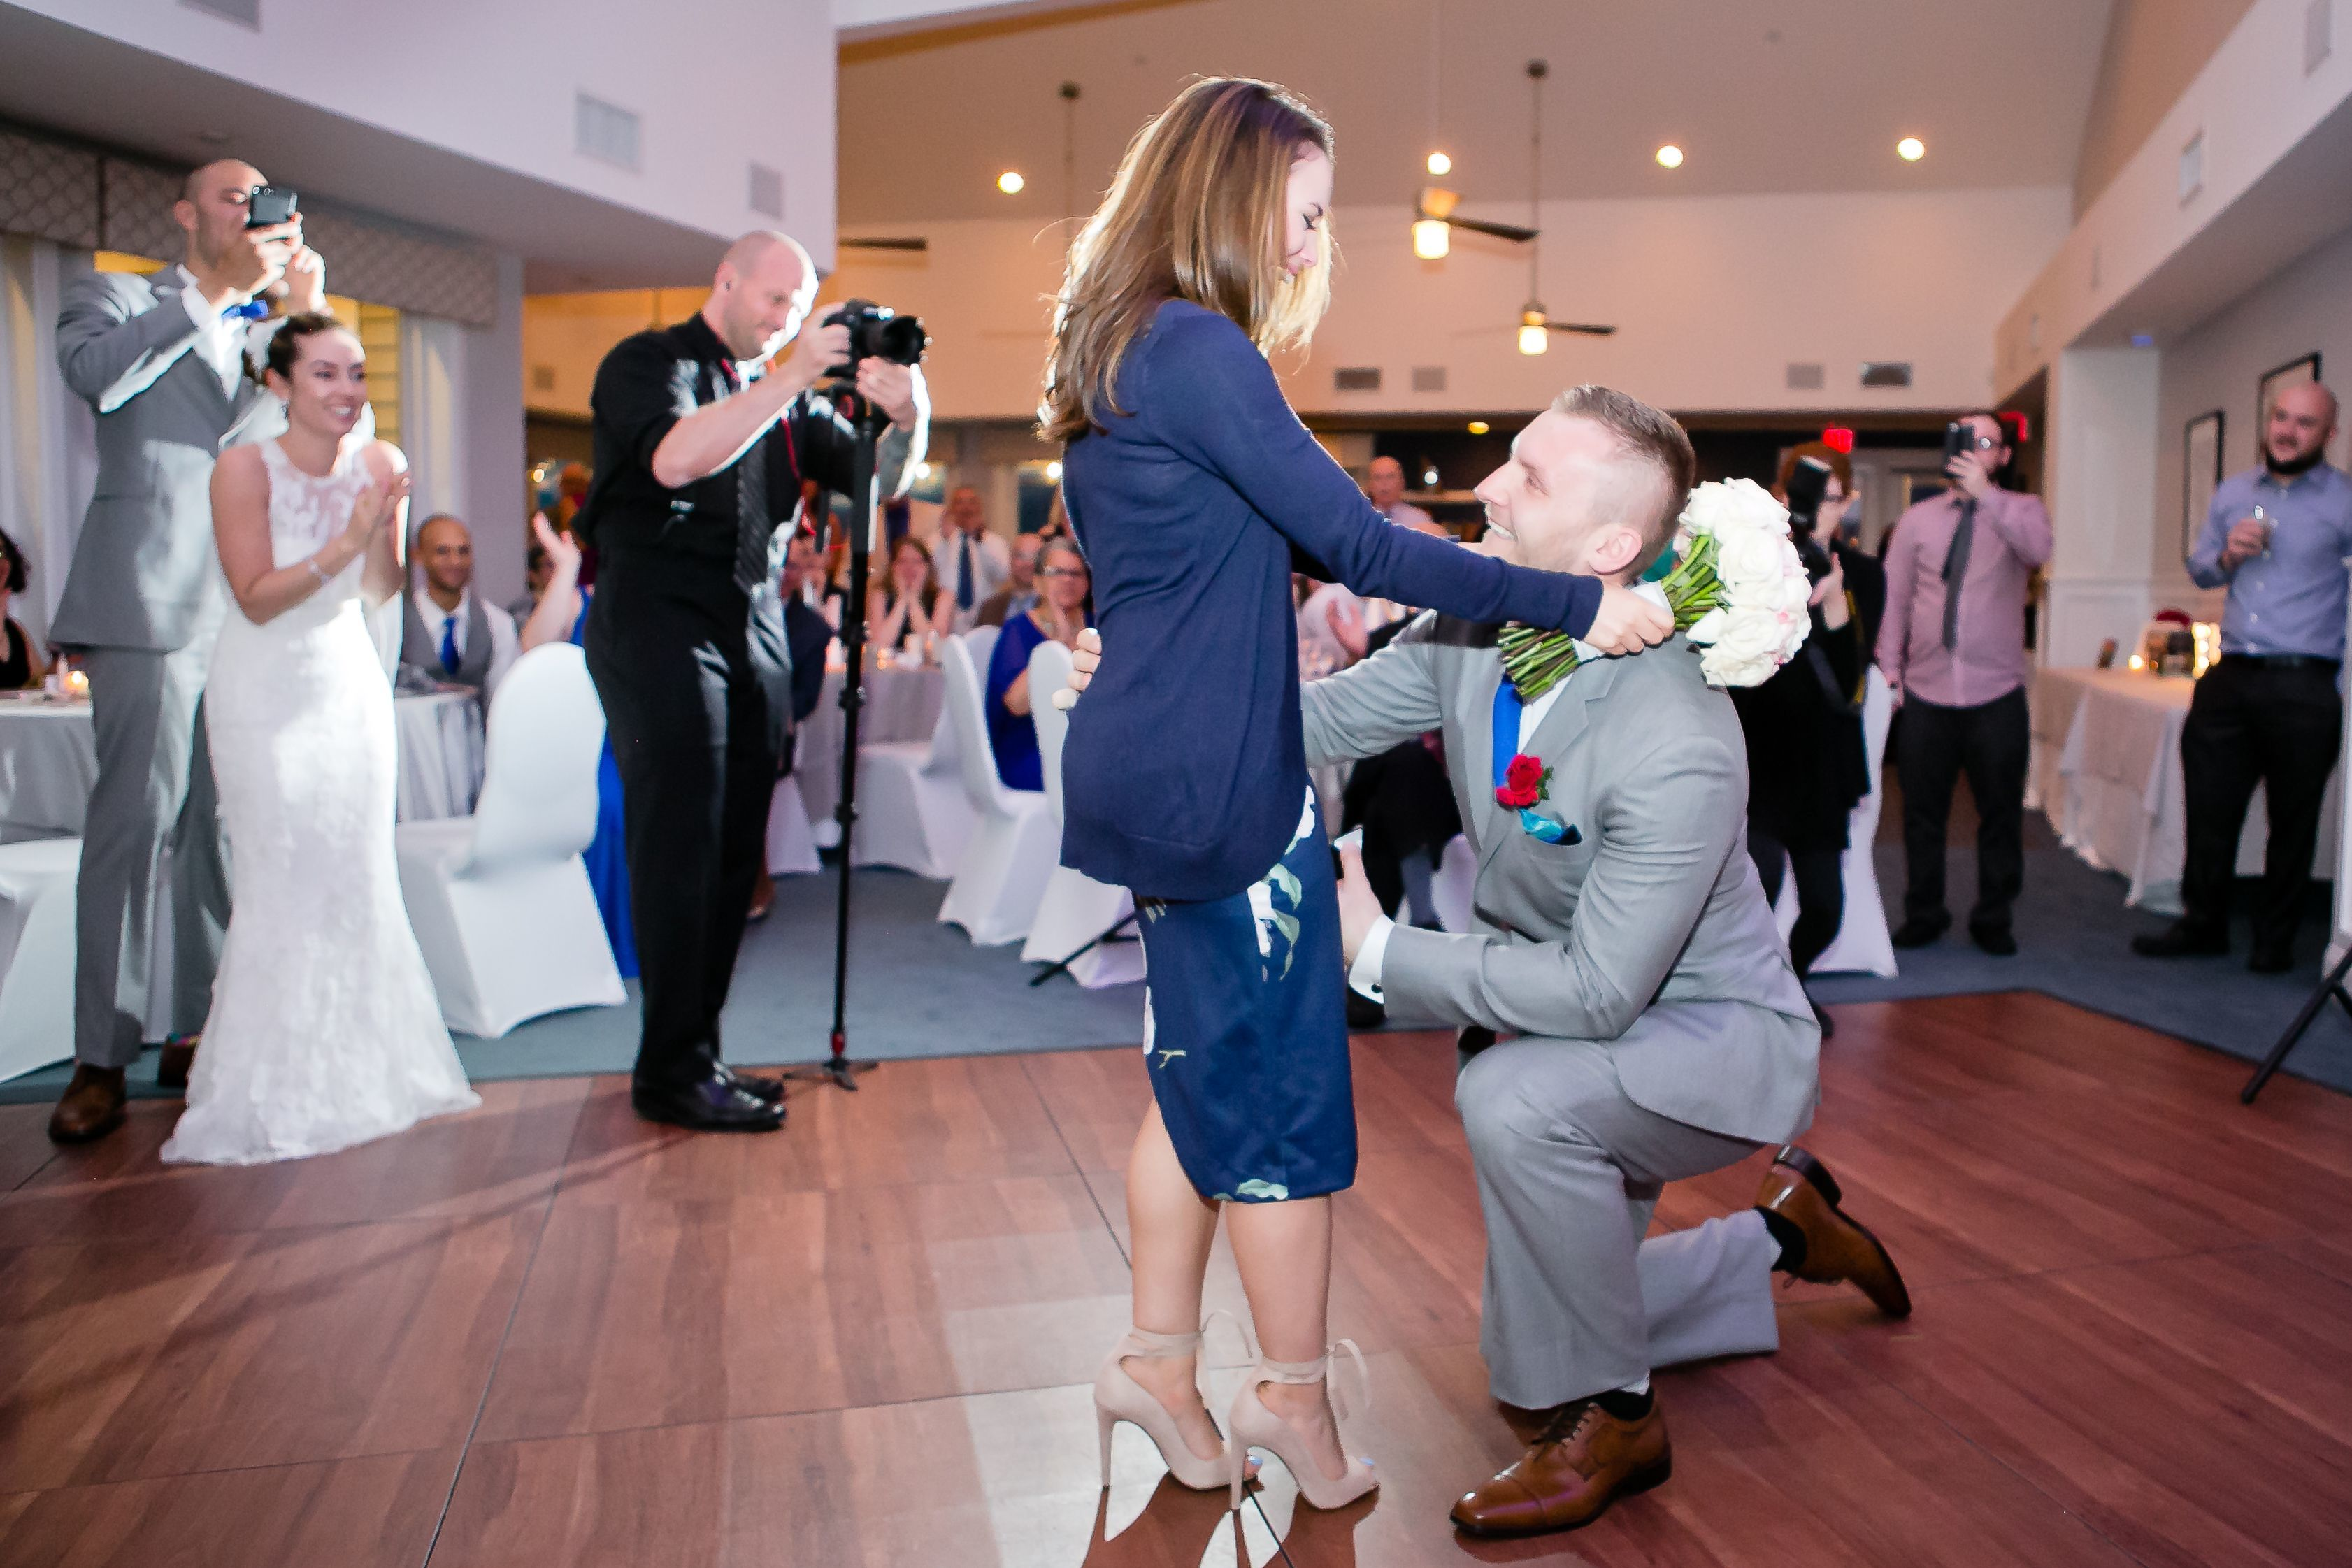 Rather than toss her bouquet, the bride handed it to friend of the couple, Lena. The bride stepped aside, and there was John, the grooms police partner, who proposed.